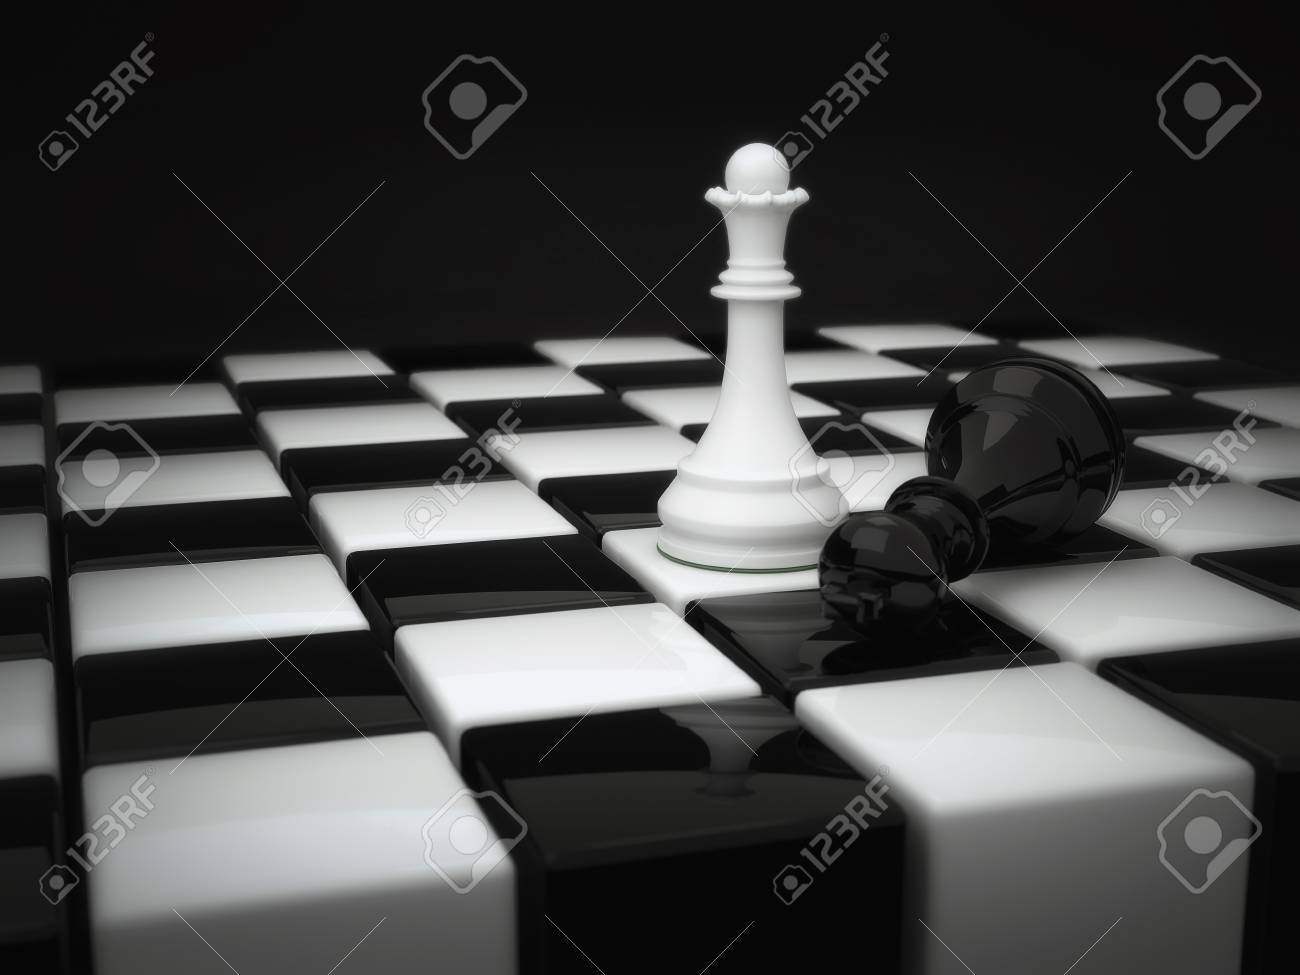 Chess pieces white queen and defeated the black king stock photo 33652115